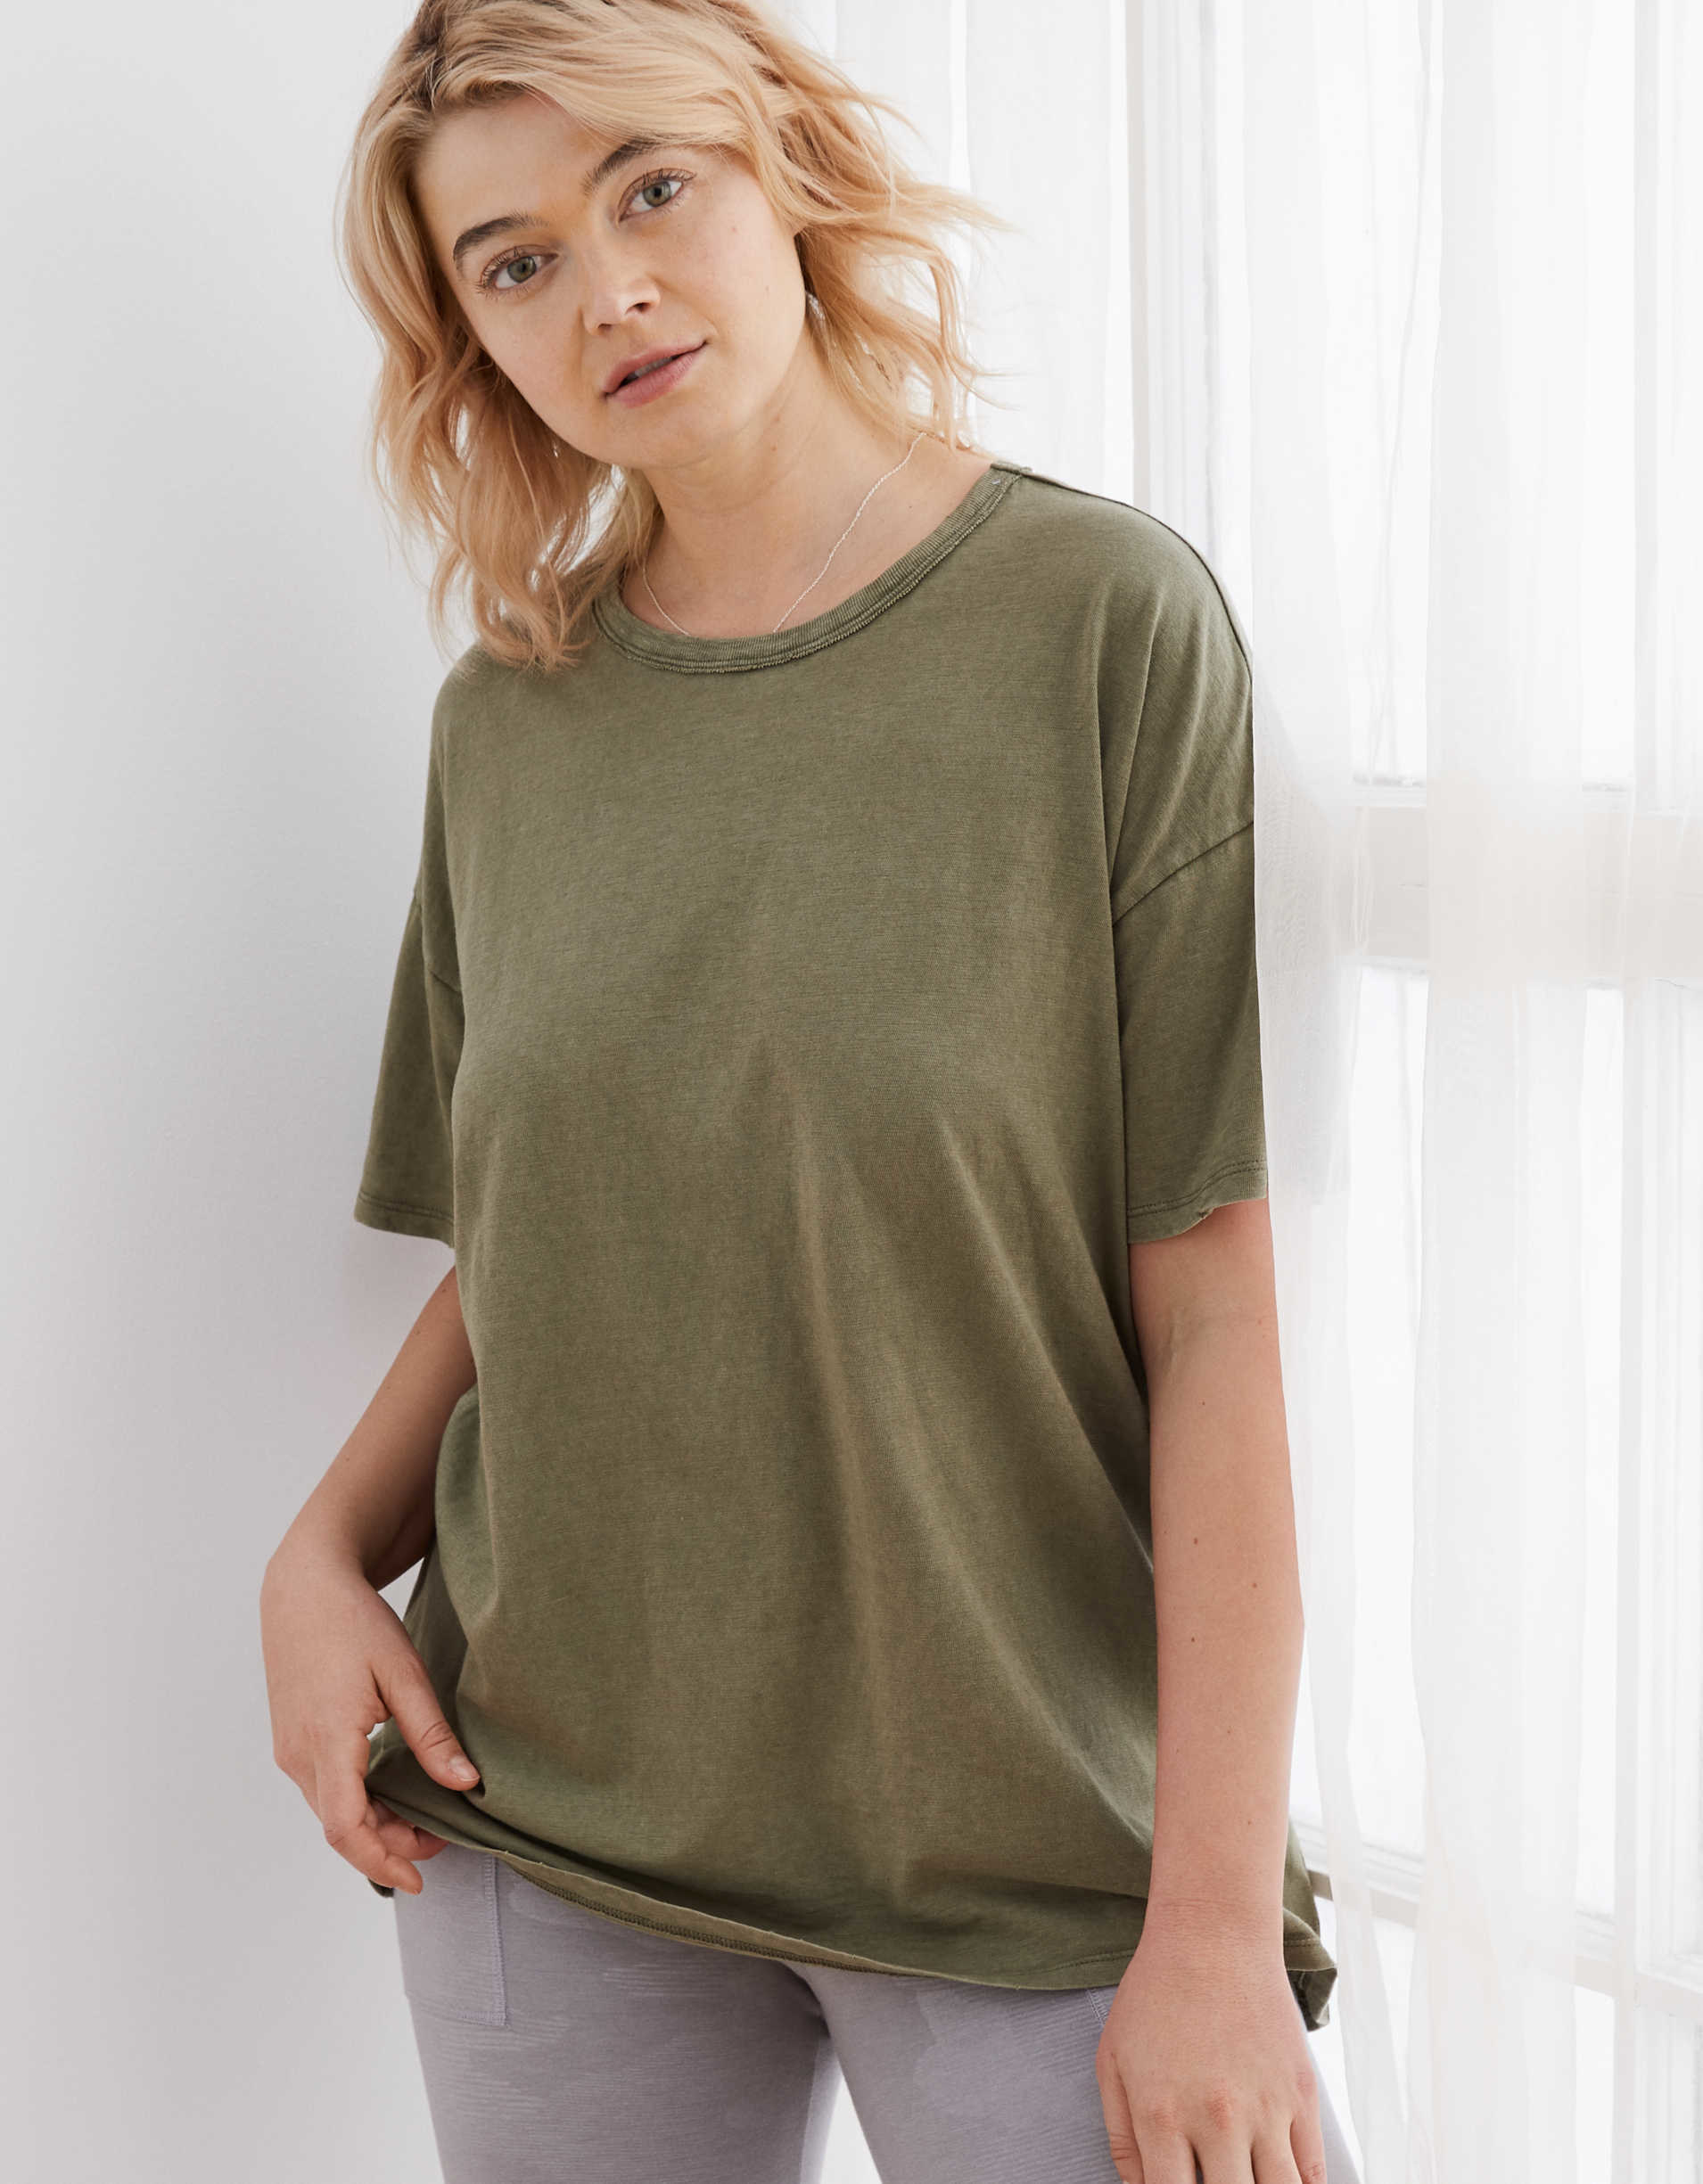 Model wearing the scoop-neck t-shirt with dropped shoulders and a long hem in olive green